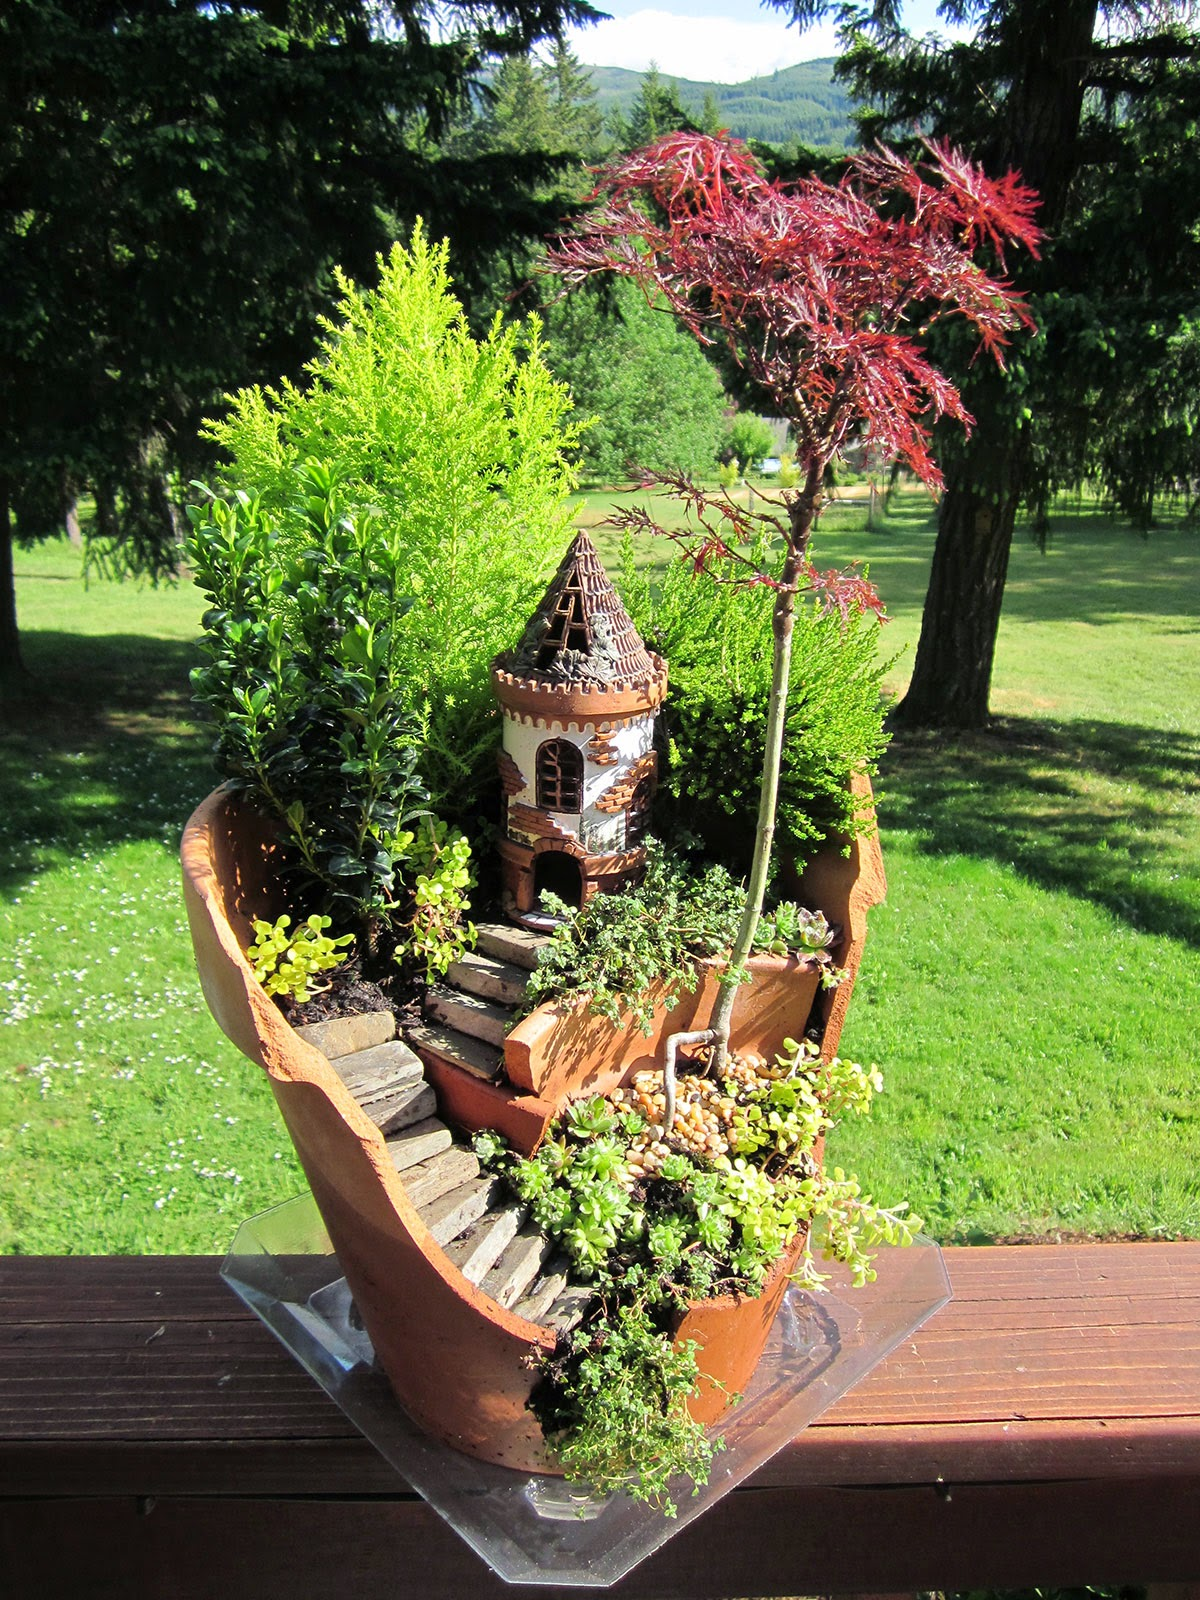 Superieur Fairy Garden With The Castle